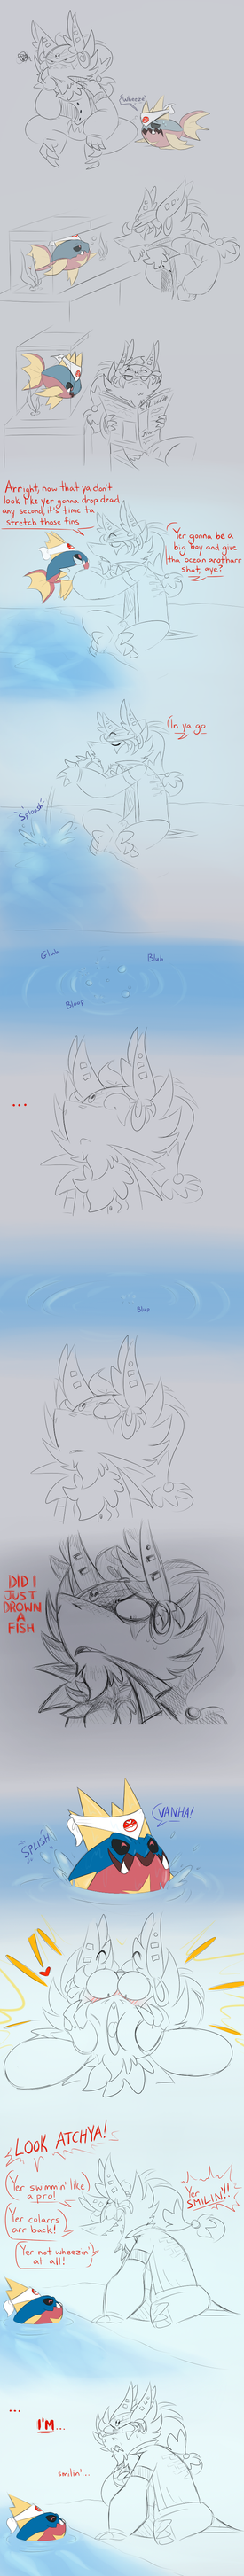 A Serious Comic About Fish Recovery by TheBerserkerGJ